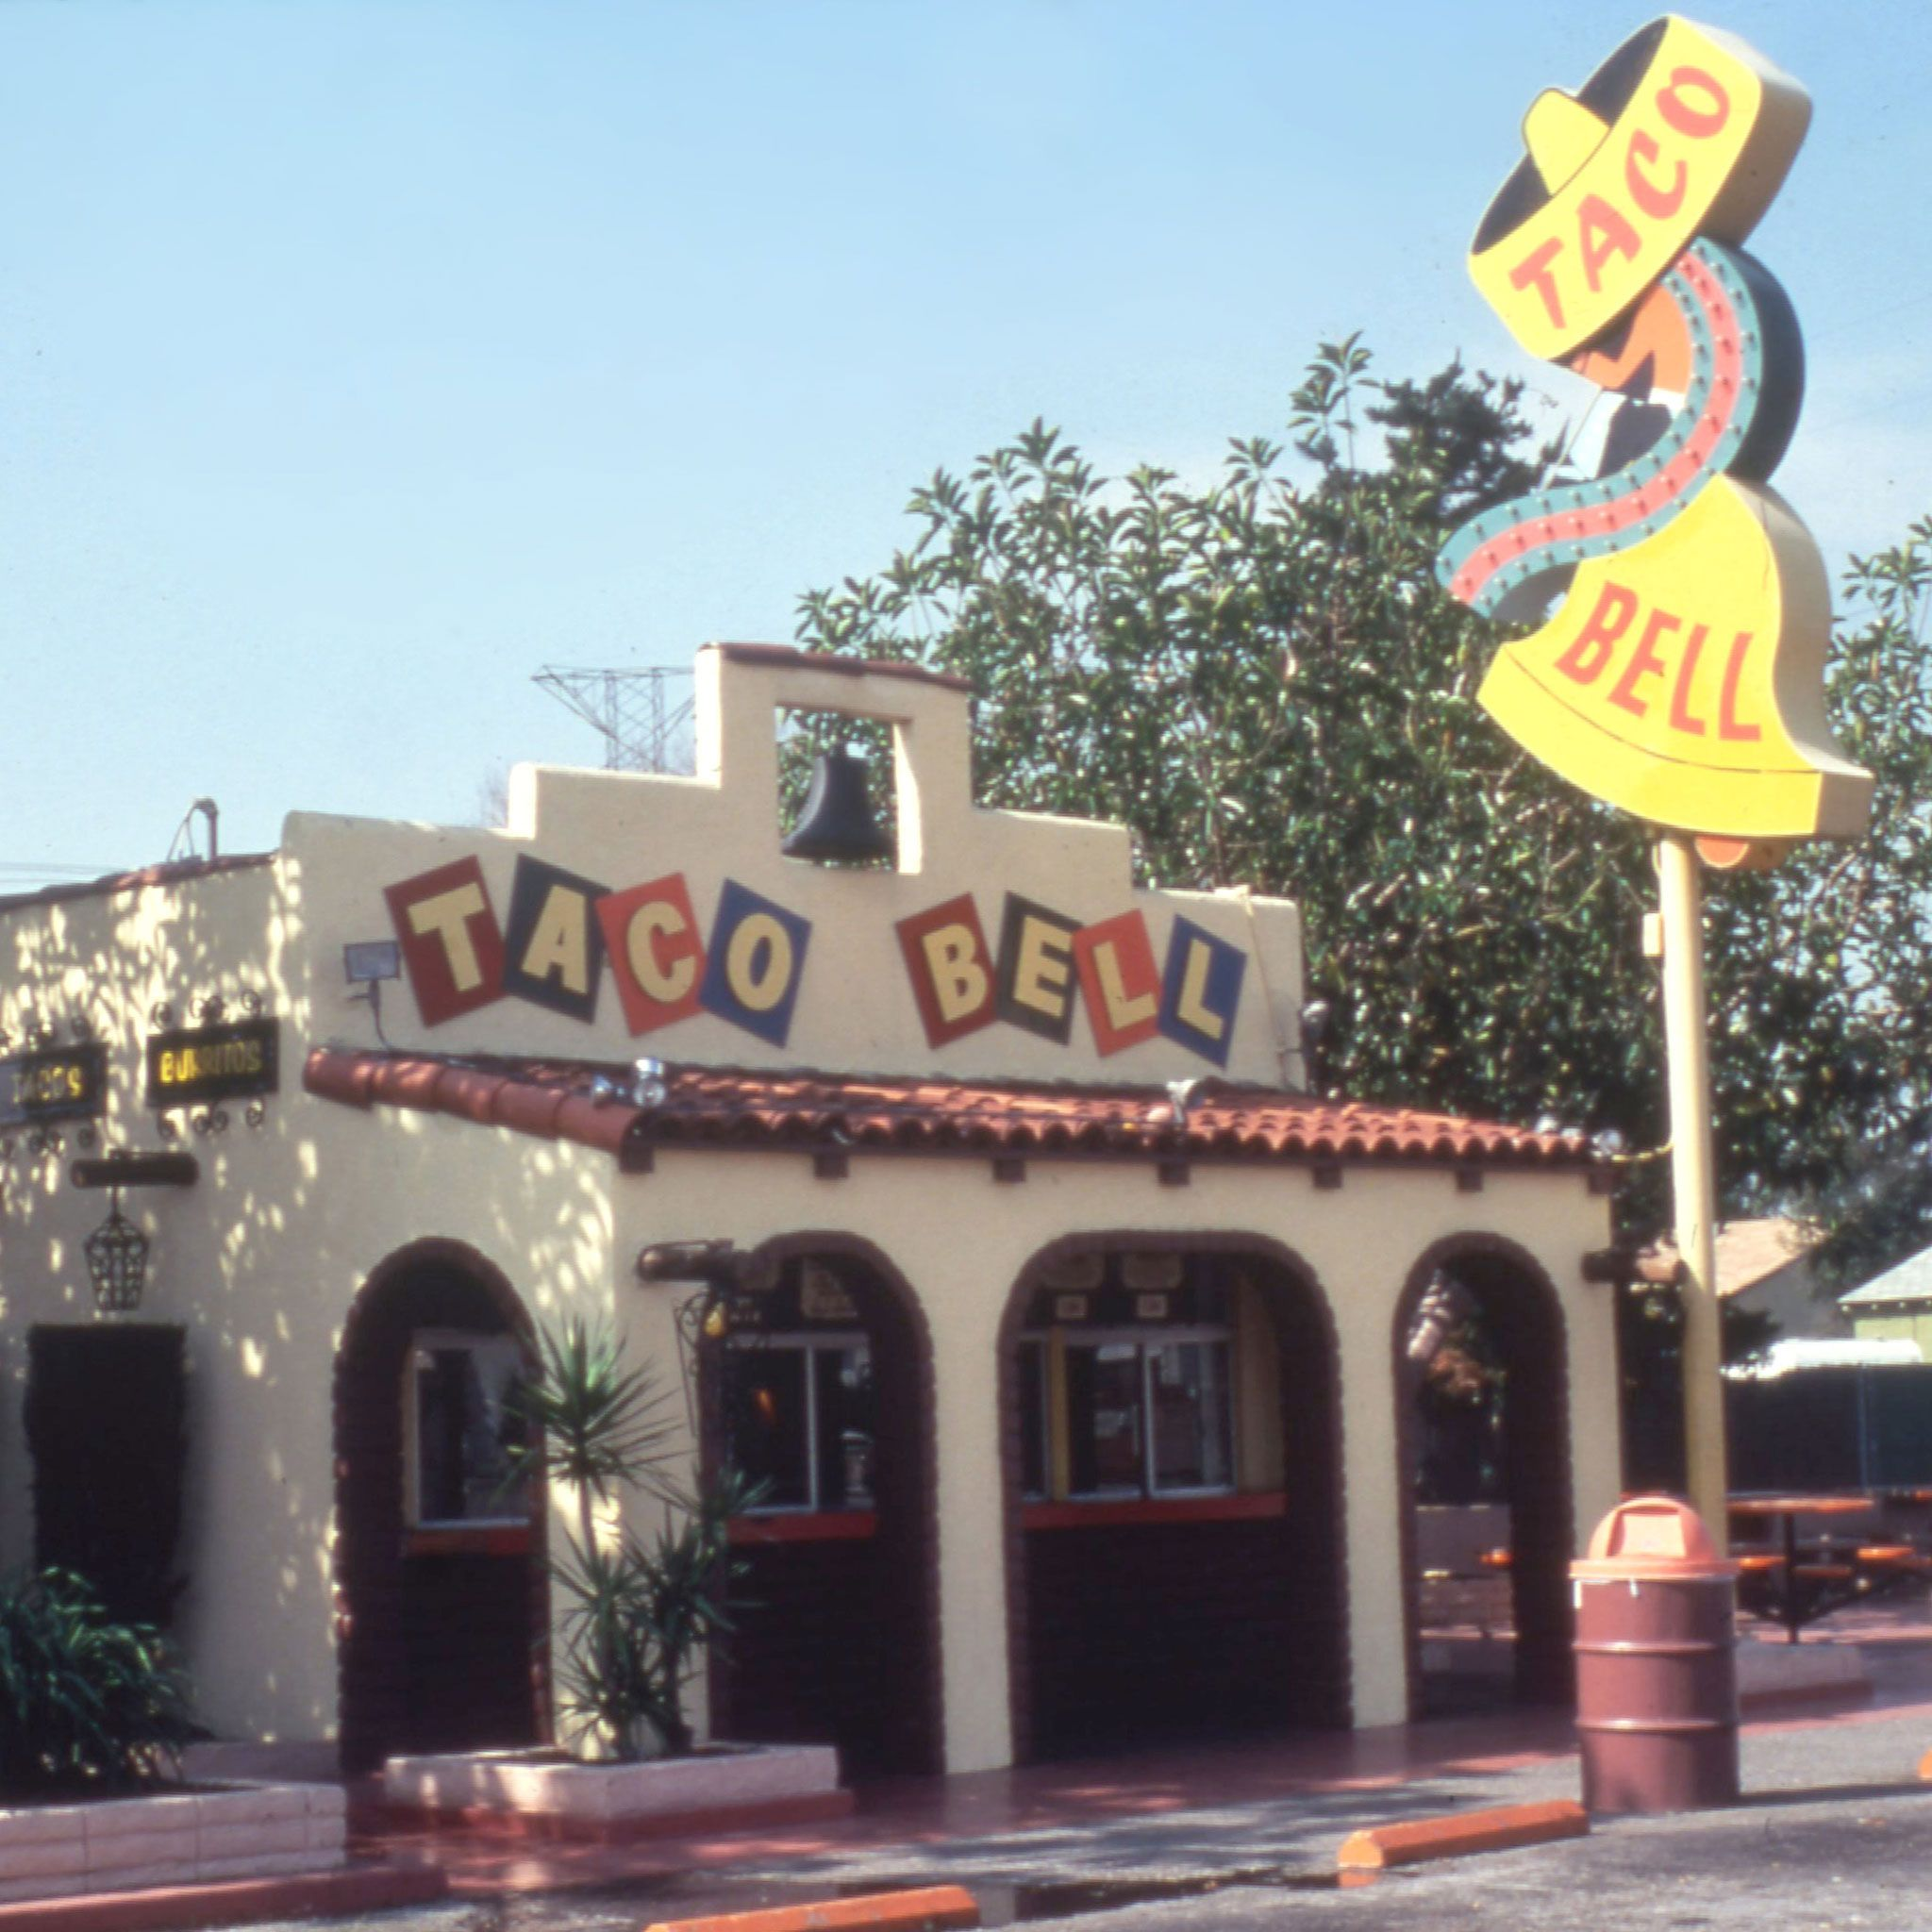 Plans Underway to Save the Original Taco Bell Location